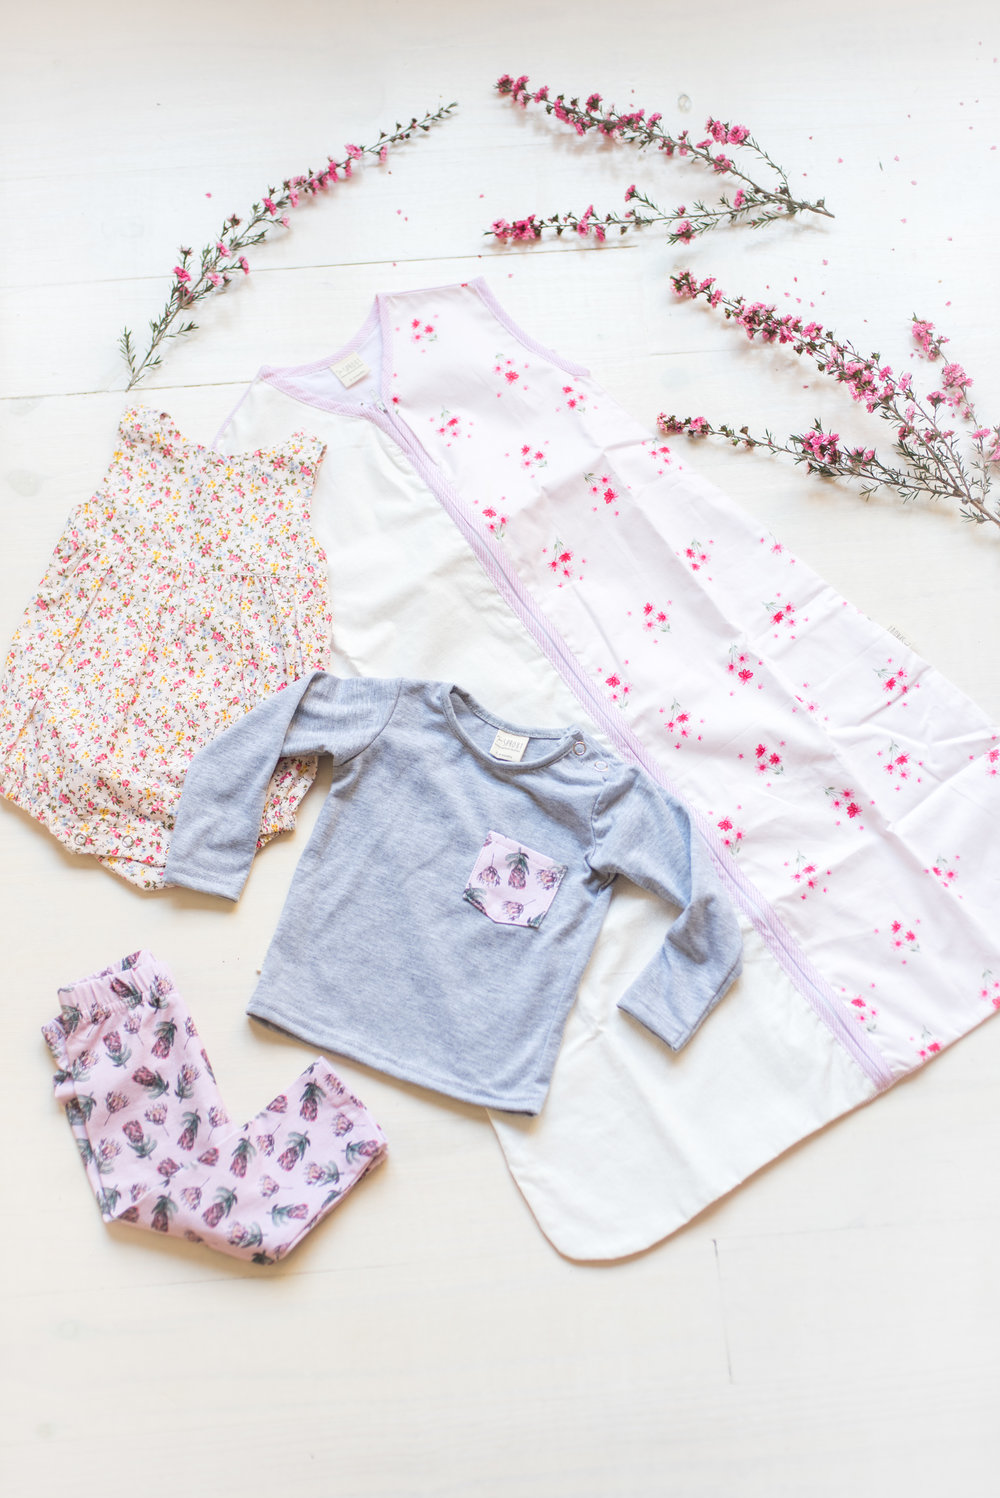 Sprout SA Kids Clothing Brand Photography by Roxy Hutton CGScreative (34 of 45).jpg